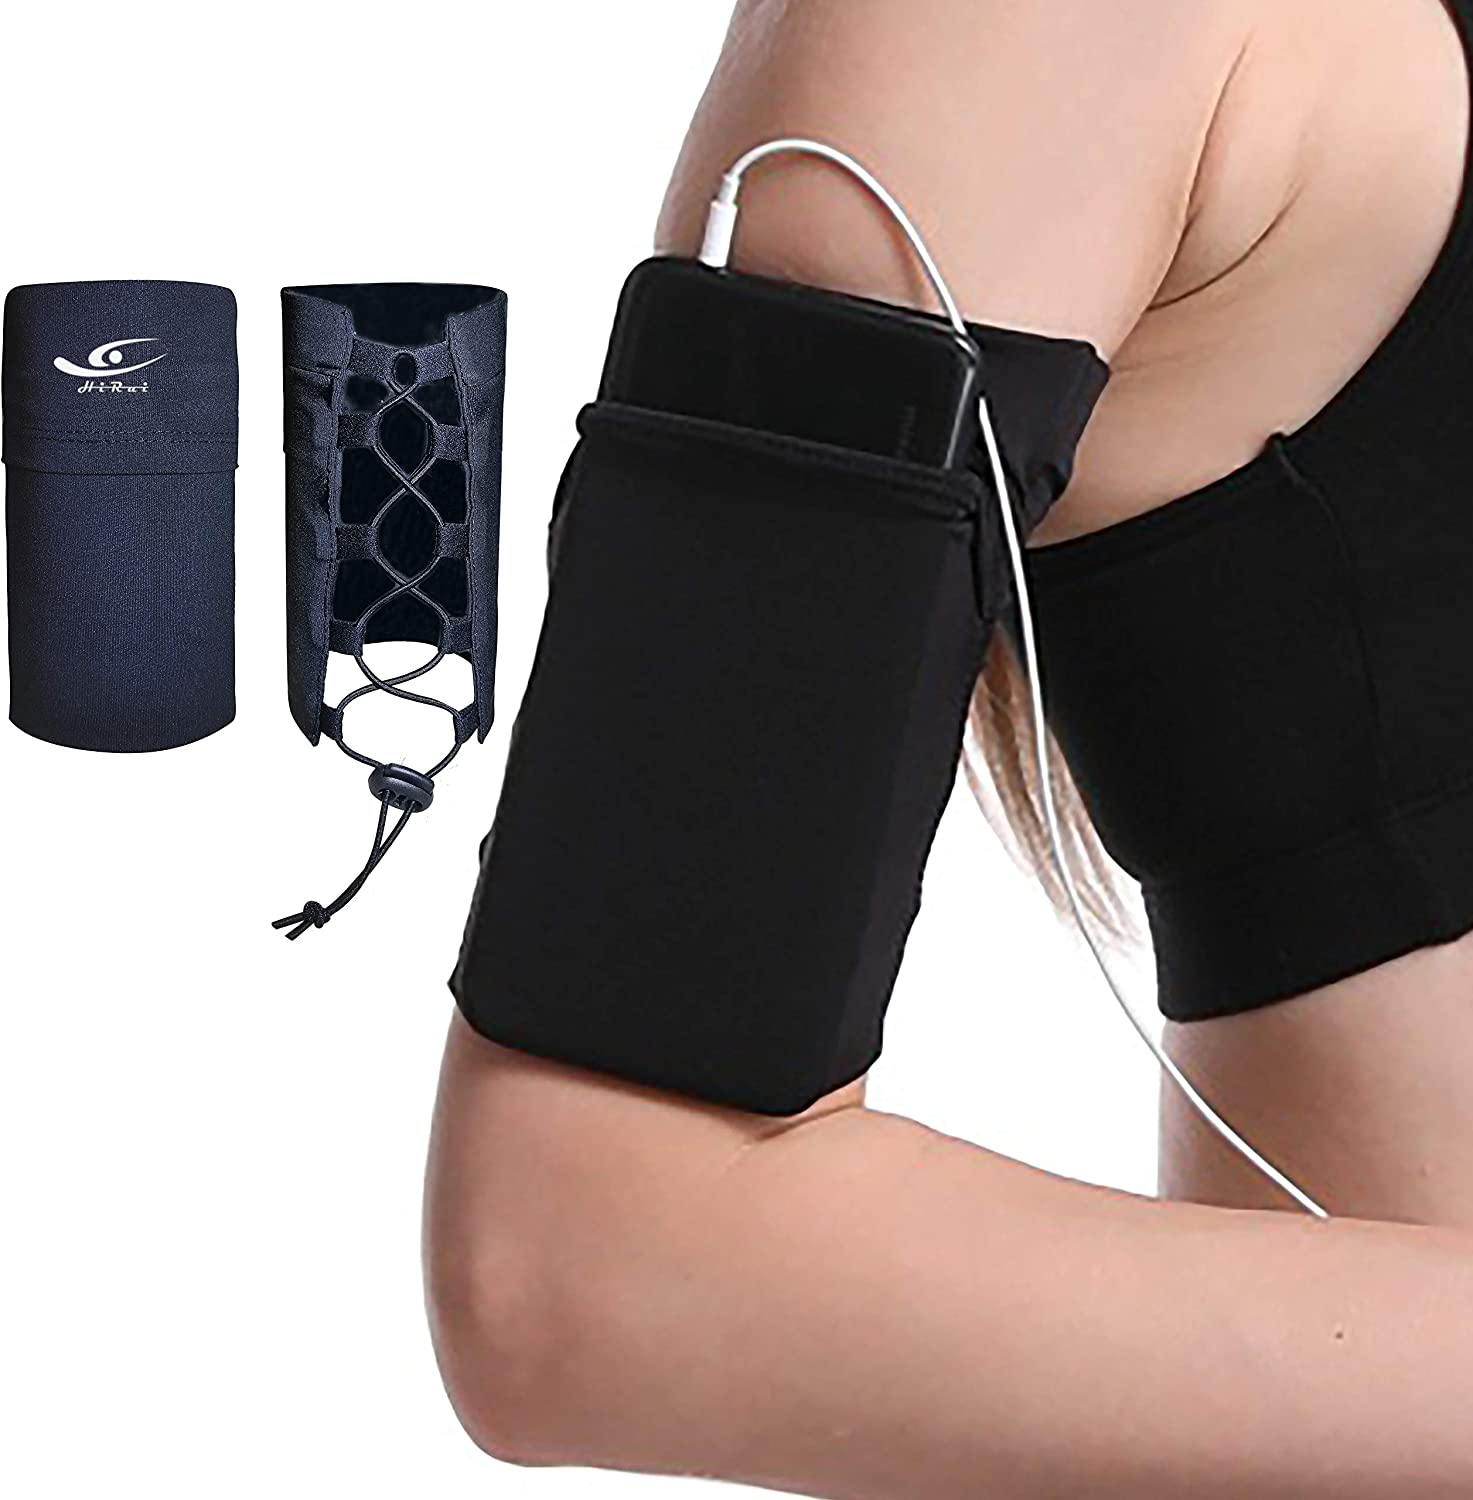 HiRui Running Armband Sleeve, Adjustable Universal Sports Armband Cell Phone Holder for Exercise Workout, Compatible with iPhone 12/12Pro/Mini iPhone 11/11Pro Samsung Galaxy All Phones (Black)